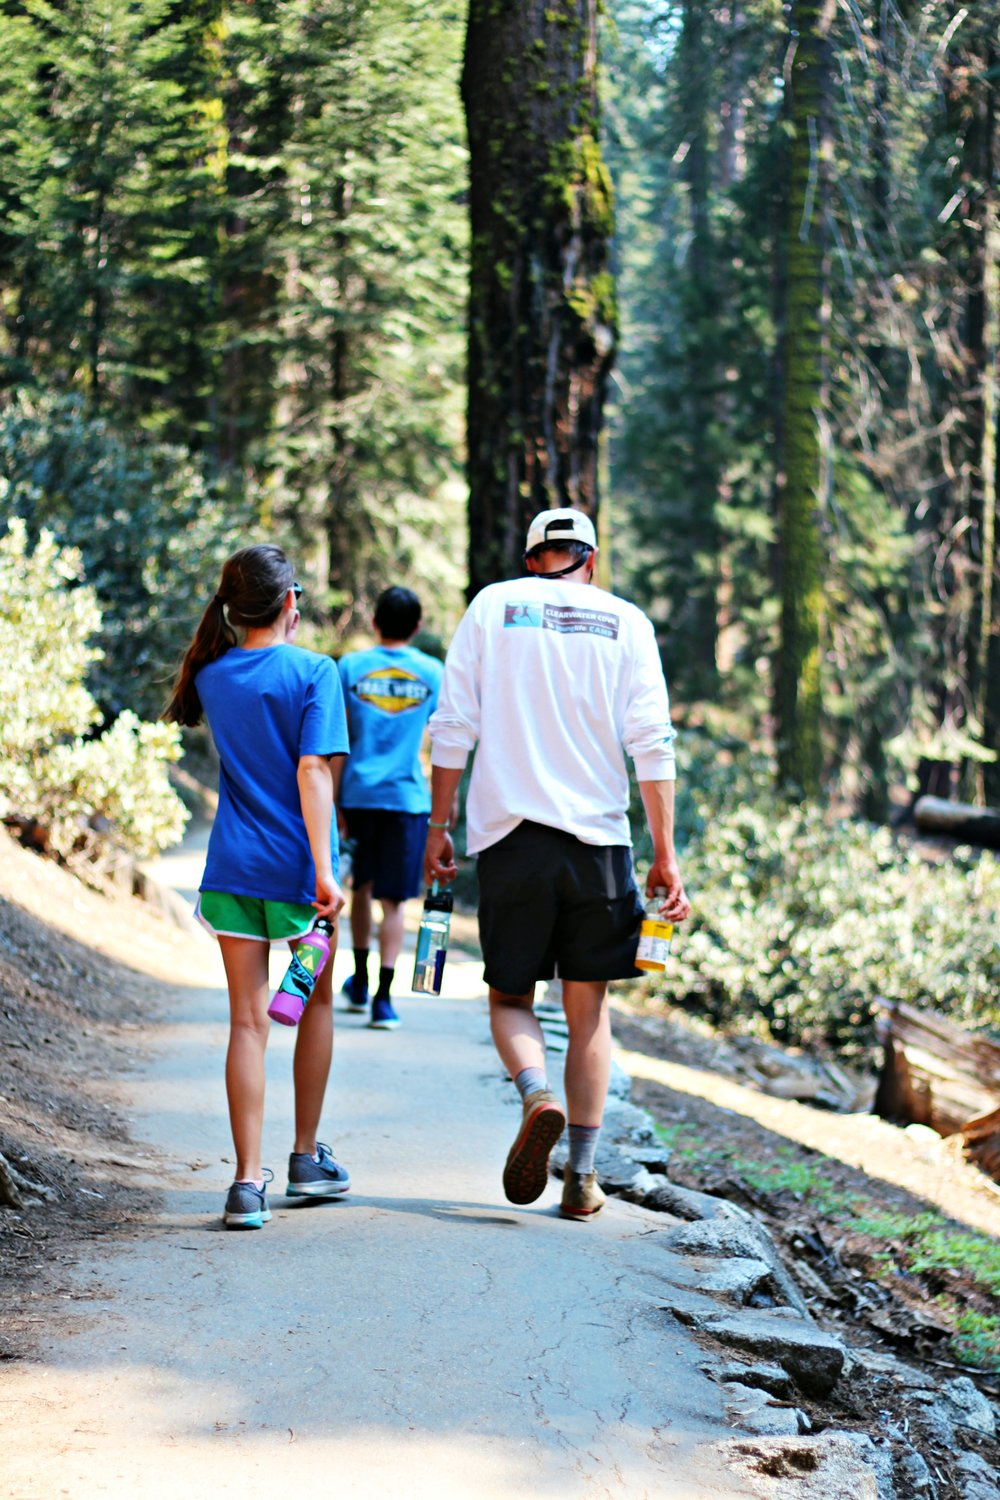 hiking together to see Sherman and Congress Trail Sequoia National Park